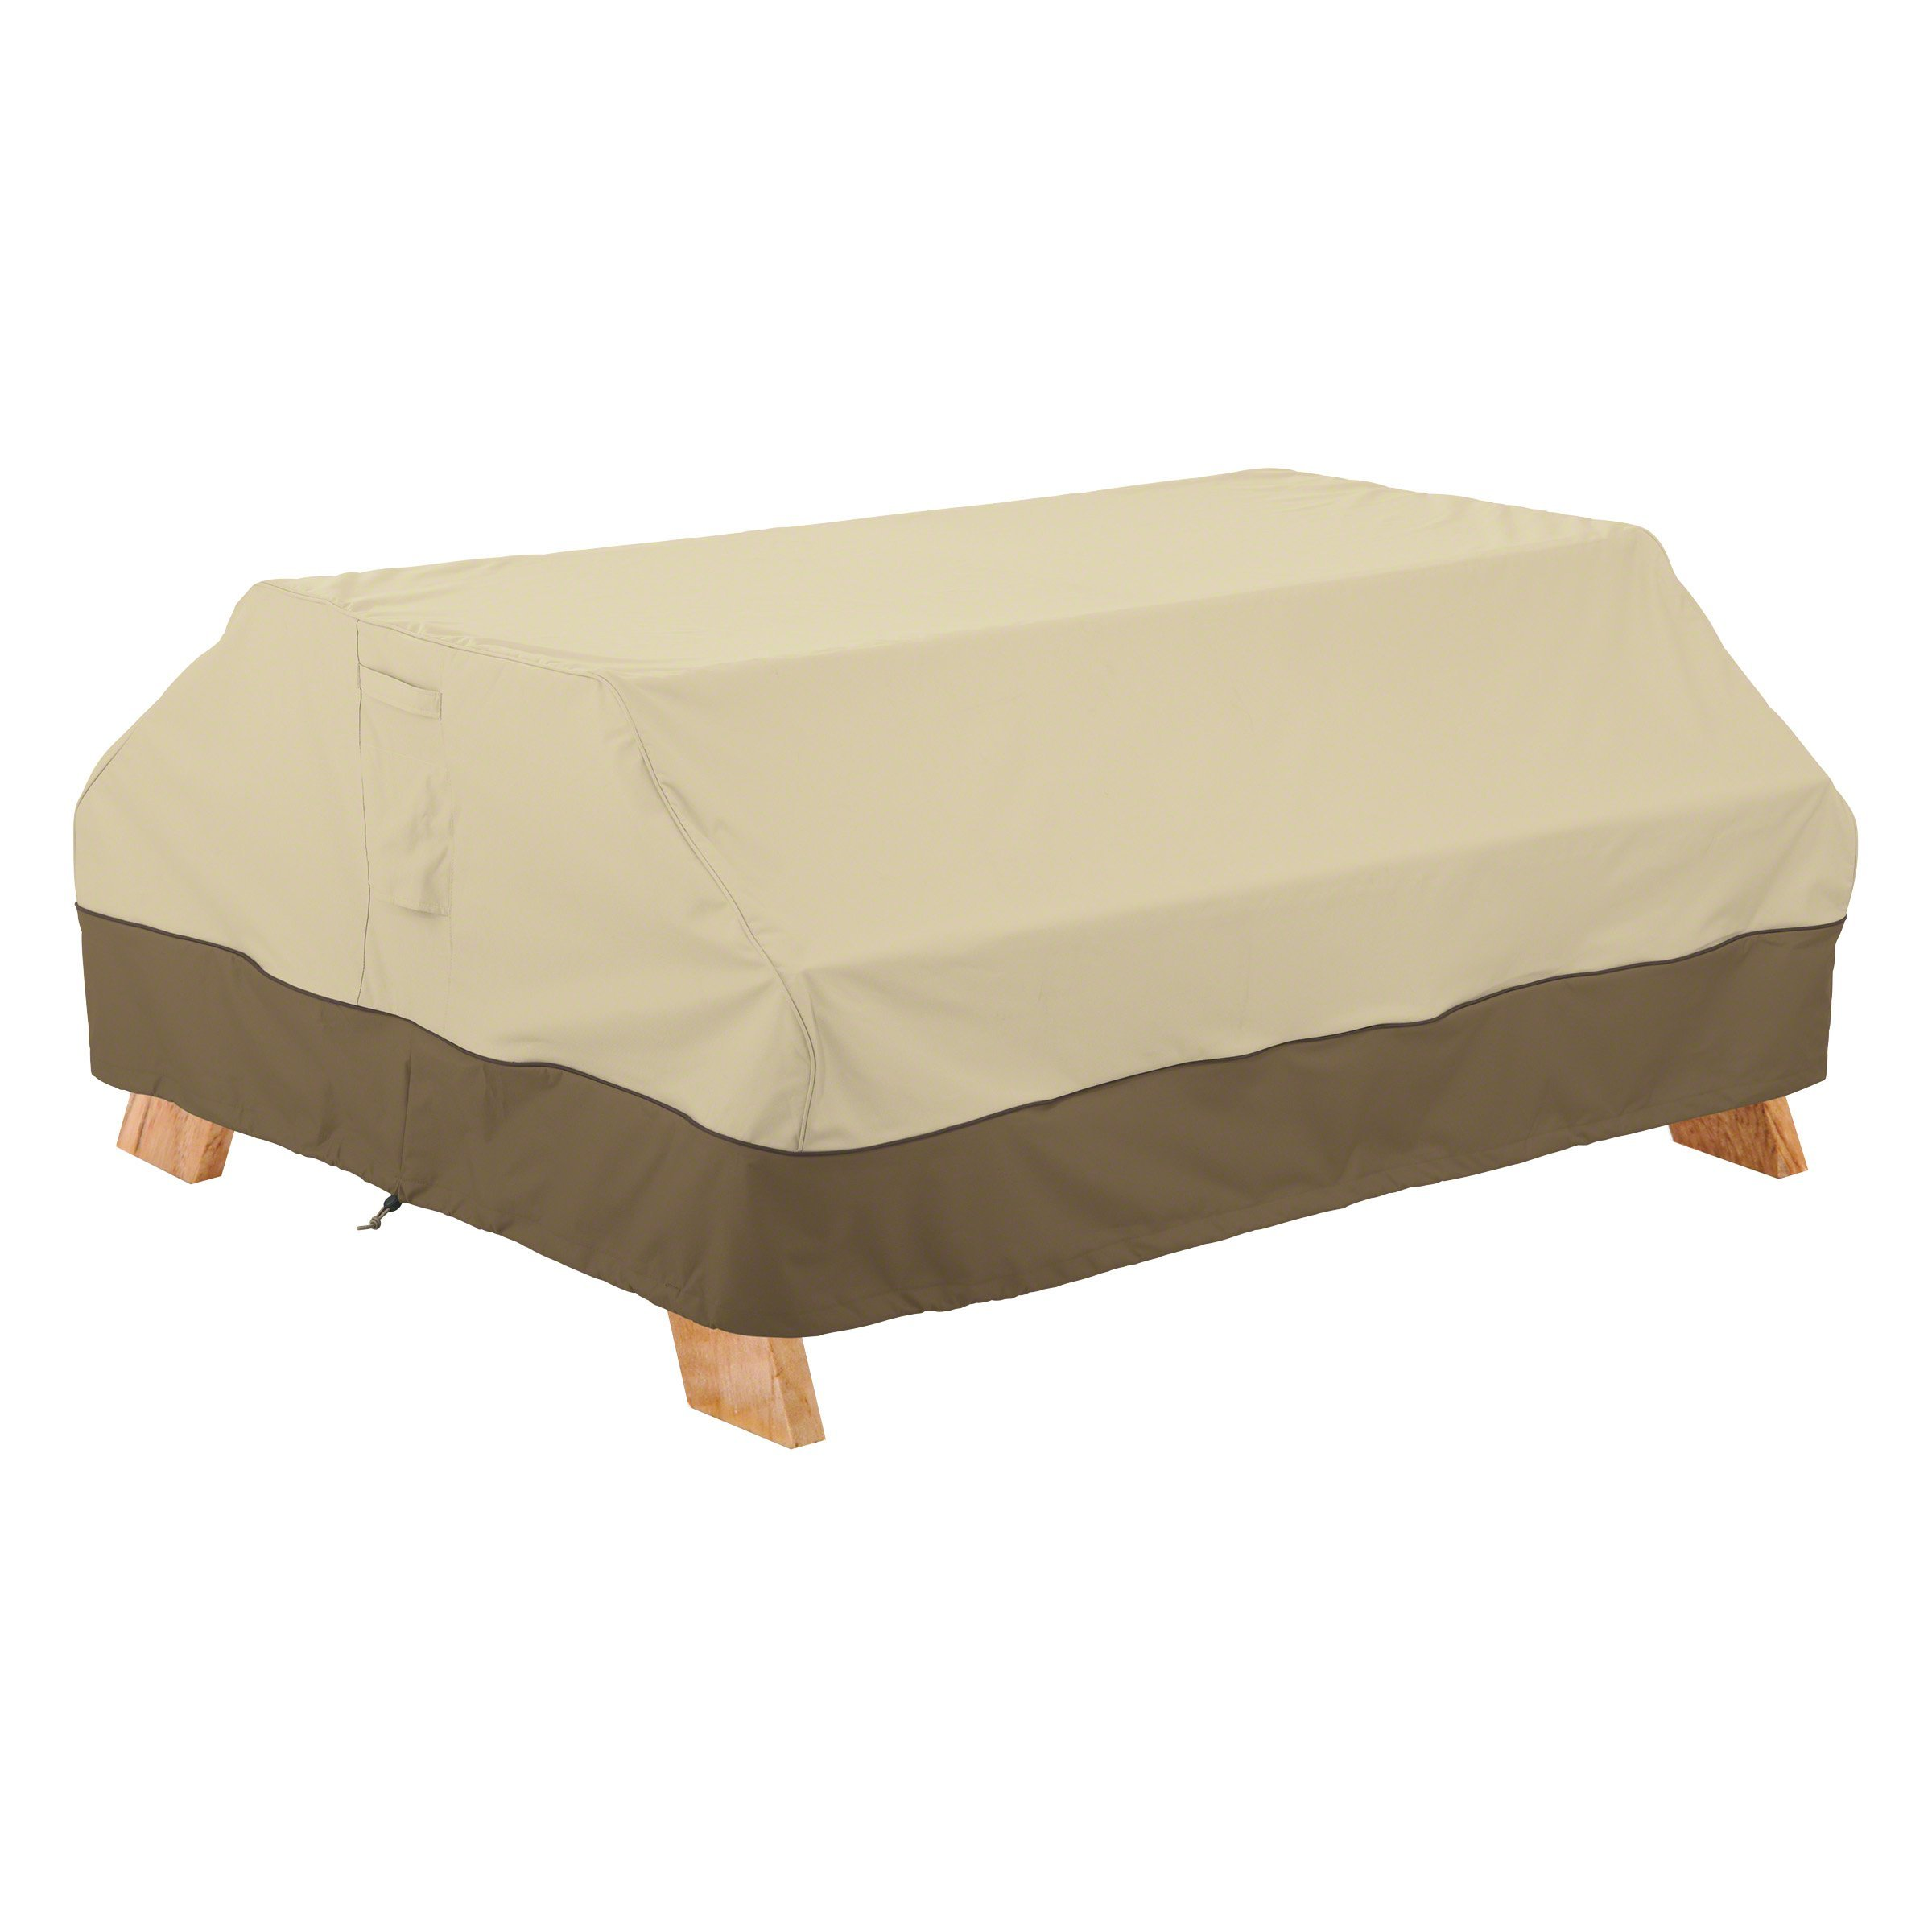 Classic Accessories Veranda Picnic Table Cover - Durable and Water Resistant Patio Set Cover (55-618-031501-00)